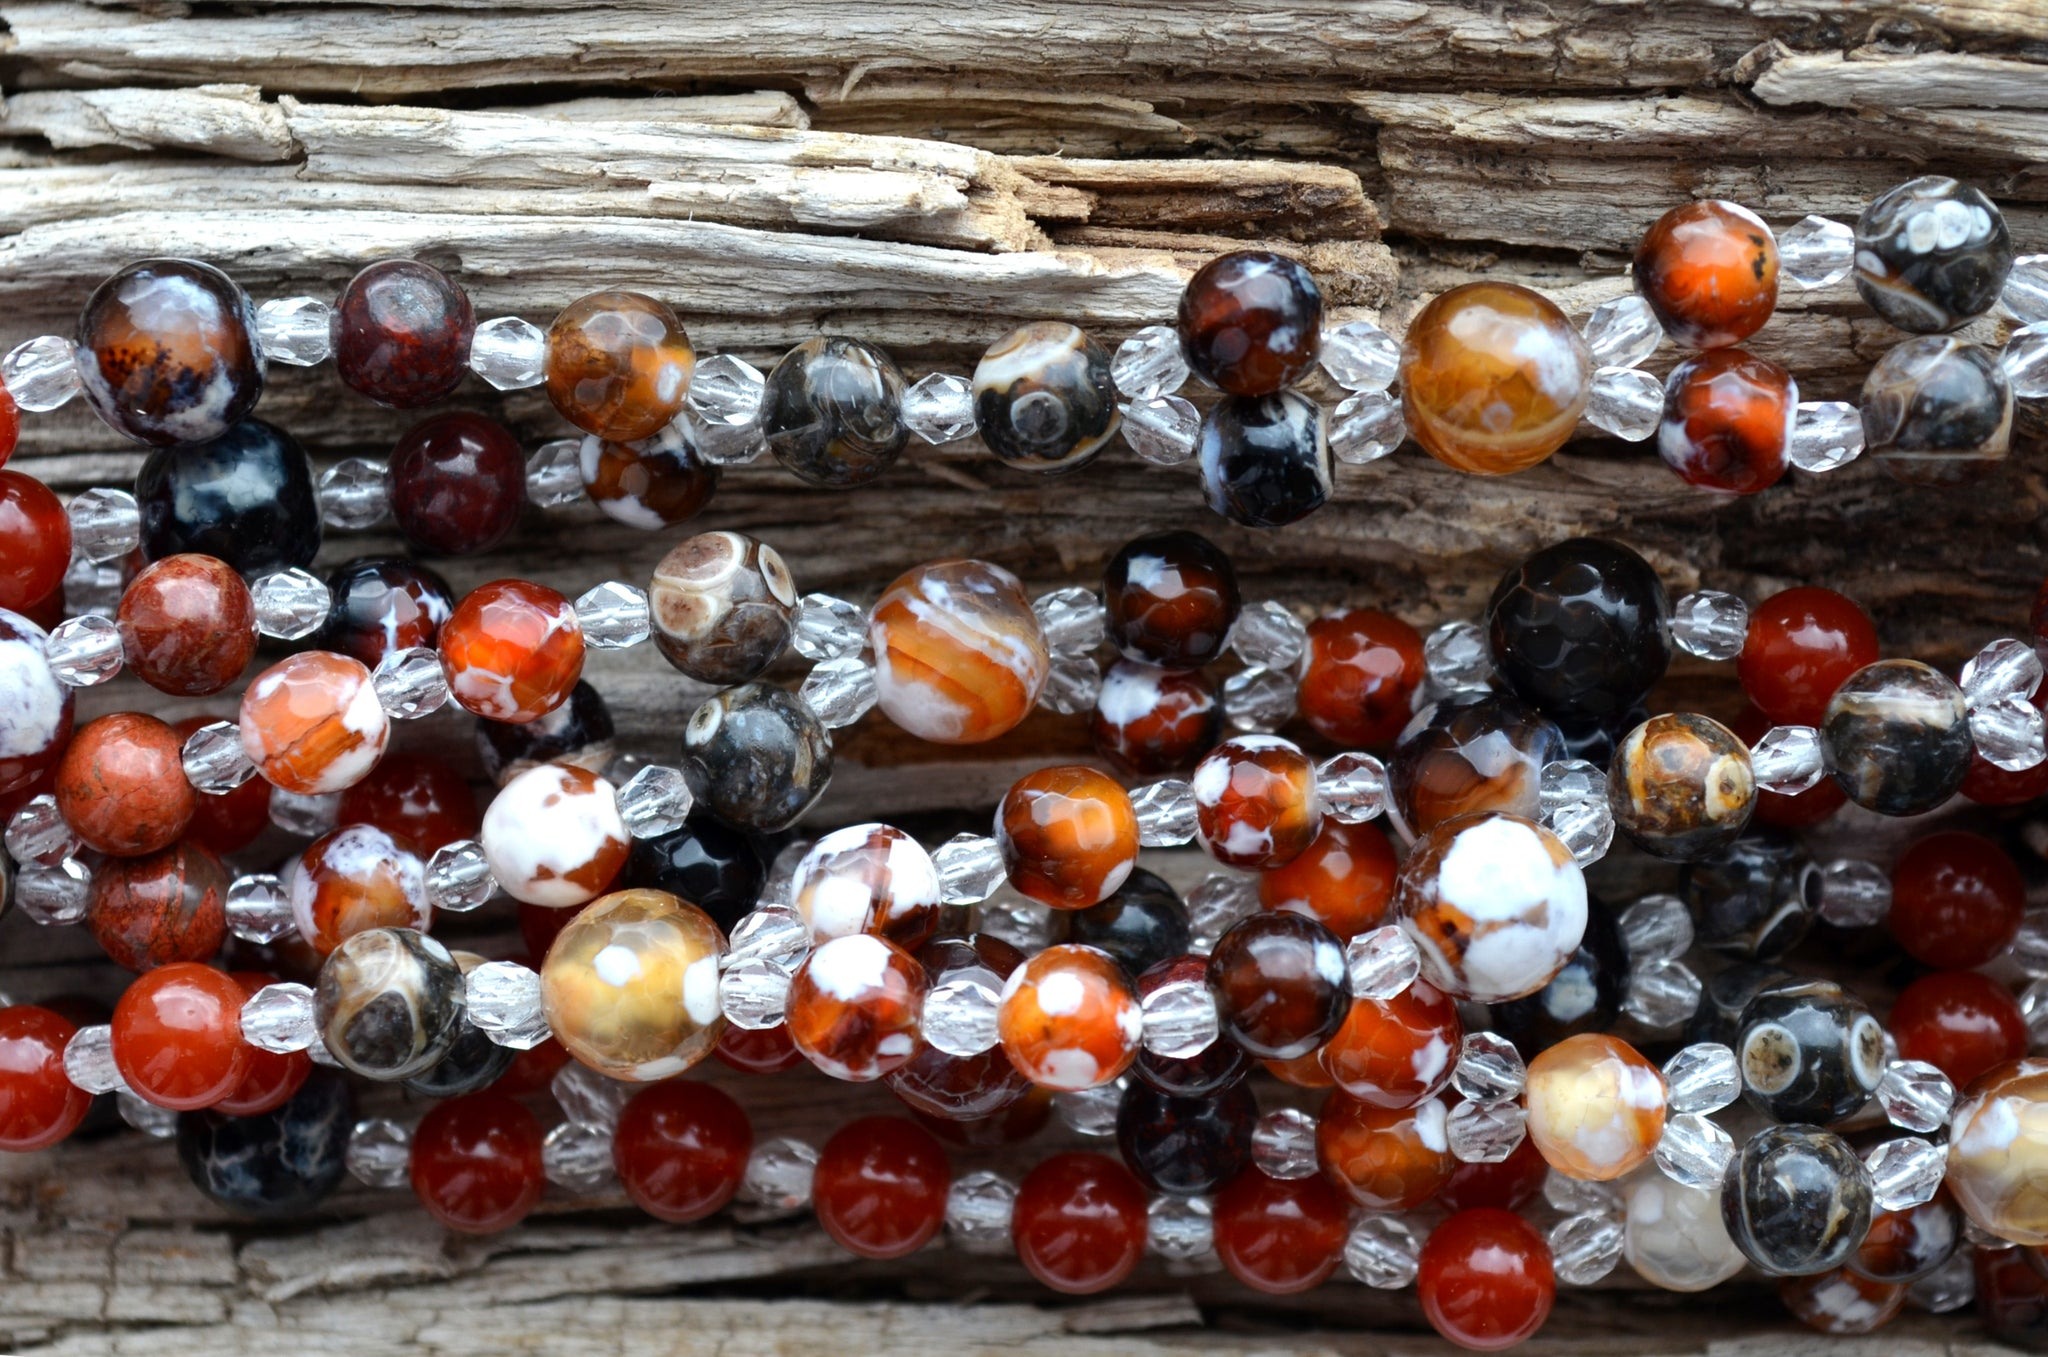 8 & 5 mm Fire Agate, 5mm Turritella Agate, 6mm Poppy Jasper, 6mm Carnelian & Crystal